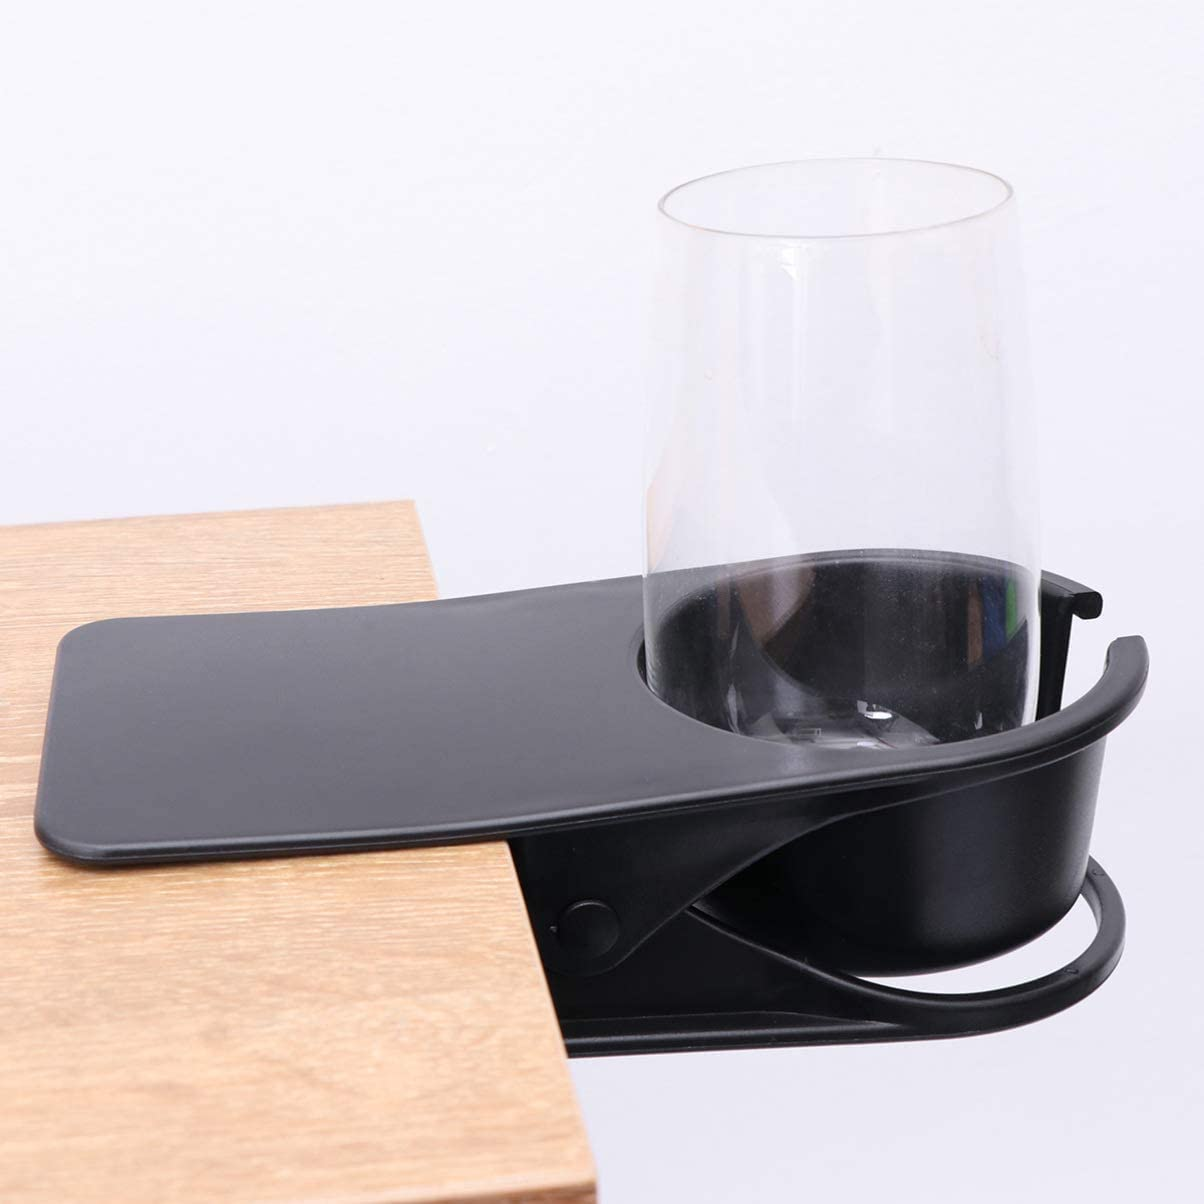 VSILE Beverage Cup Holder, Tea and Coffee Cup Holder, Tea and Drinking Cup Holder, Water Cup, Coffee Cup, Beverage, Etc. (Black)